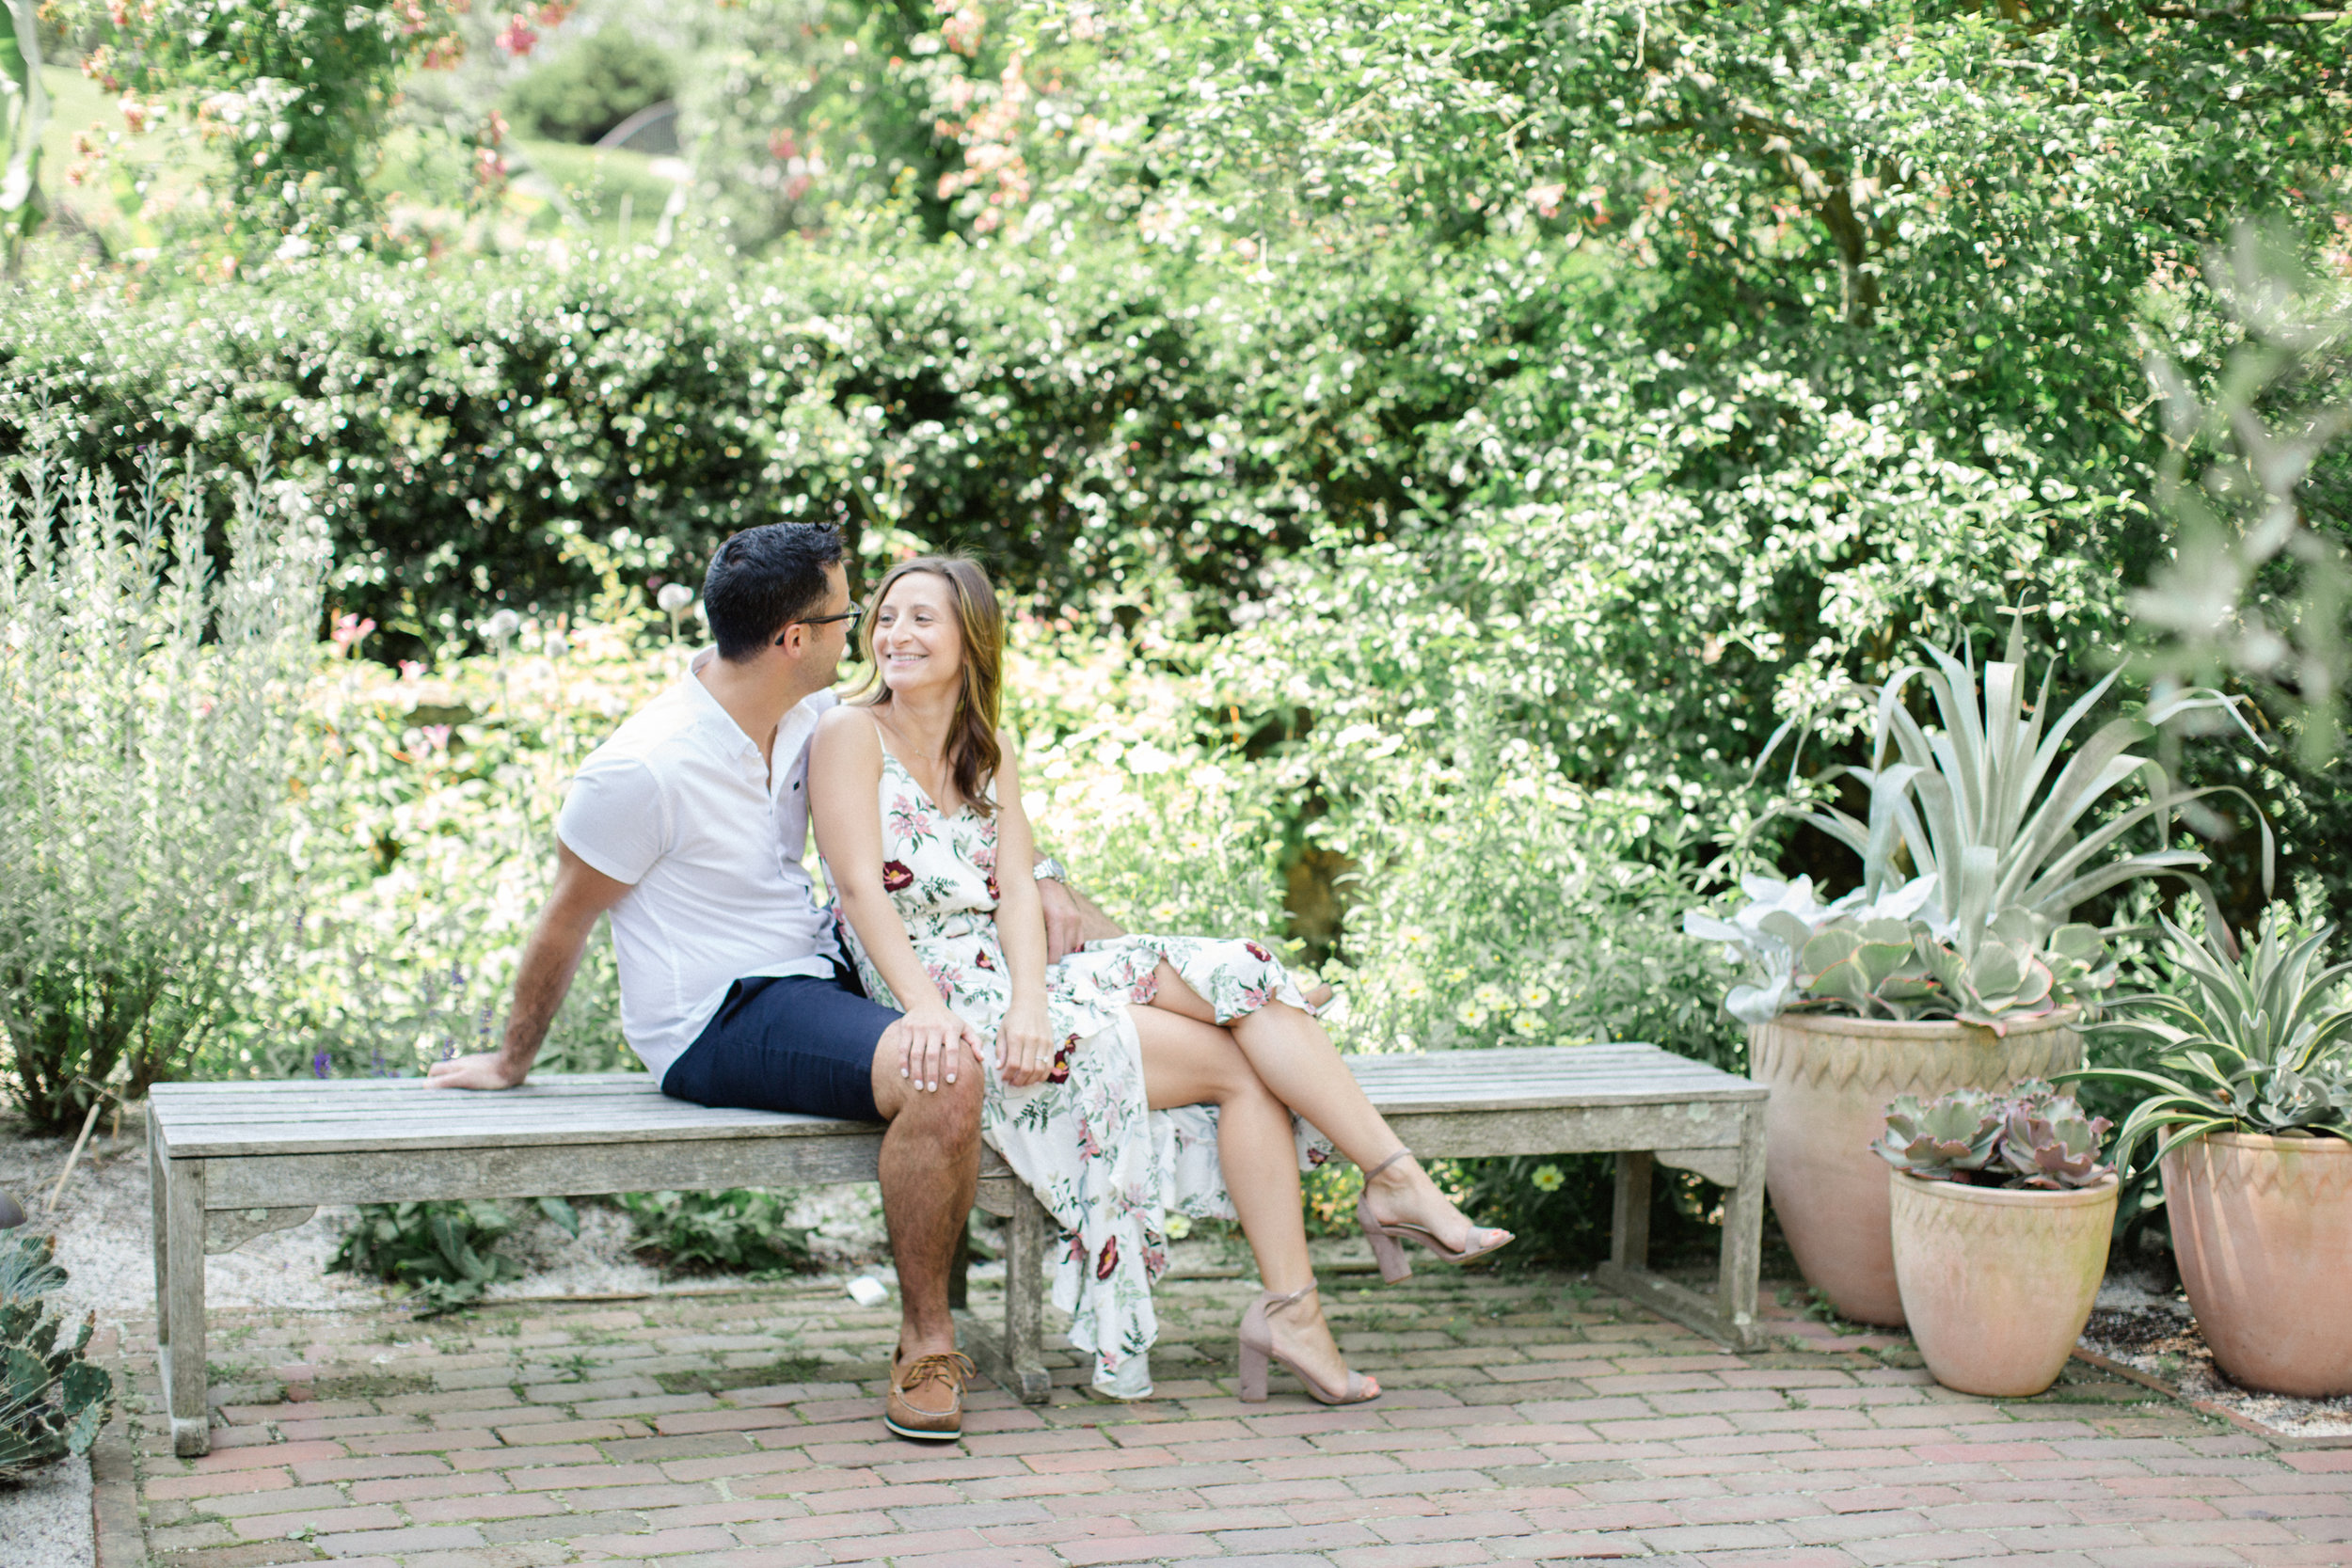 Longwood Gardens Engagement Session Photos_JDP-10.jpg